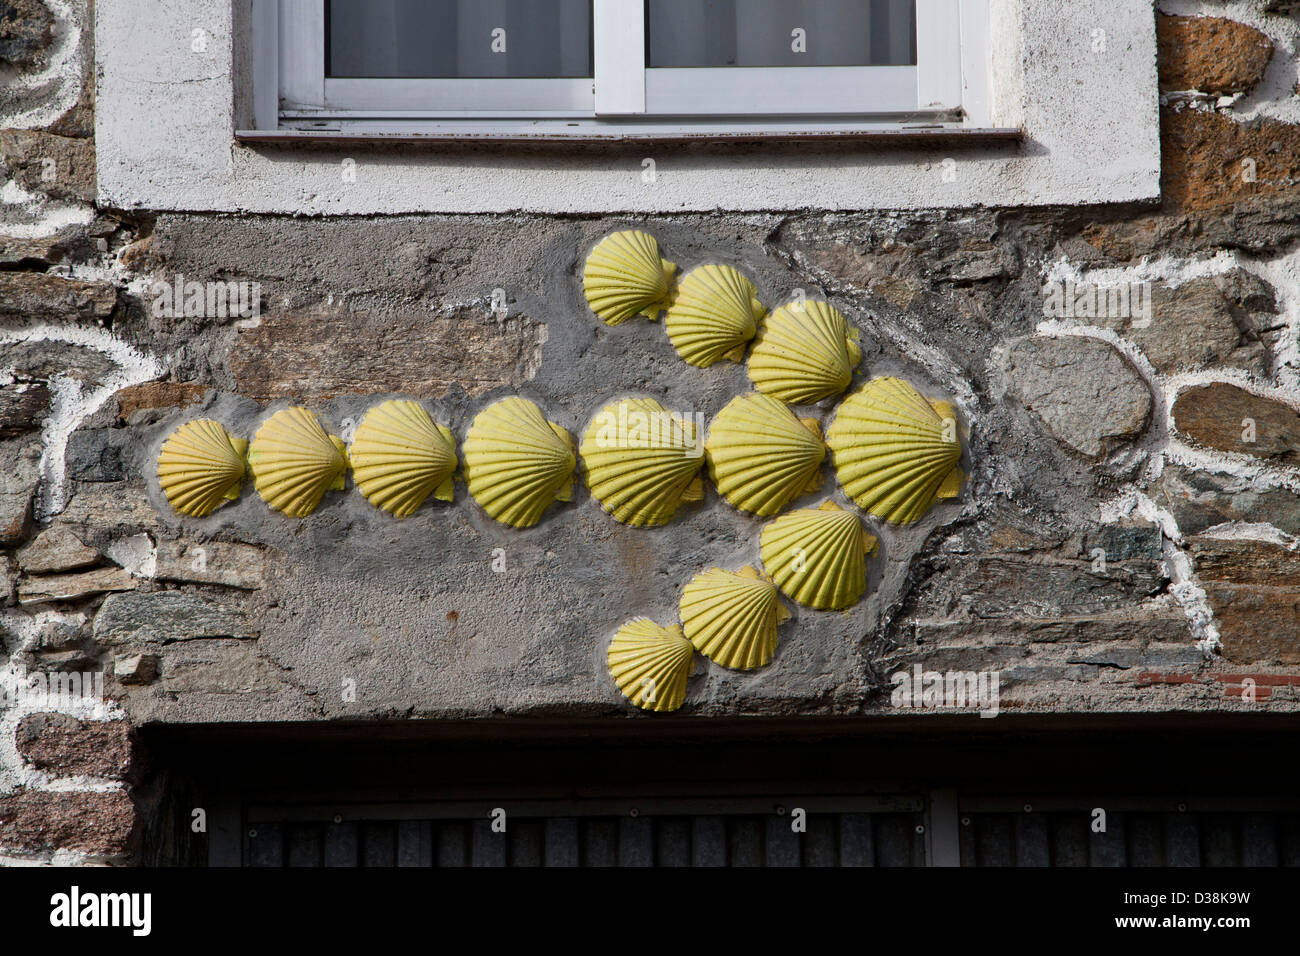 scallop shells shaped to form a yellow arrow, route marker for The Way of St. James, El Camino to Santiago de Compostela - Stock Image